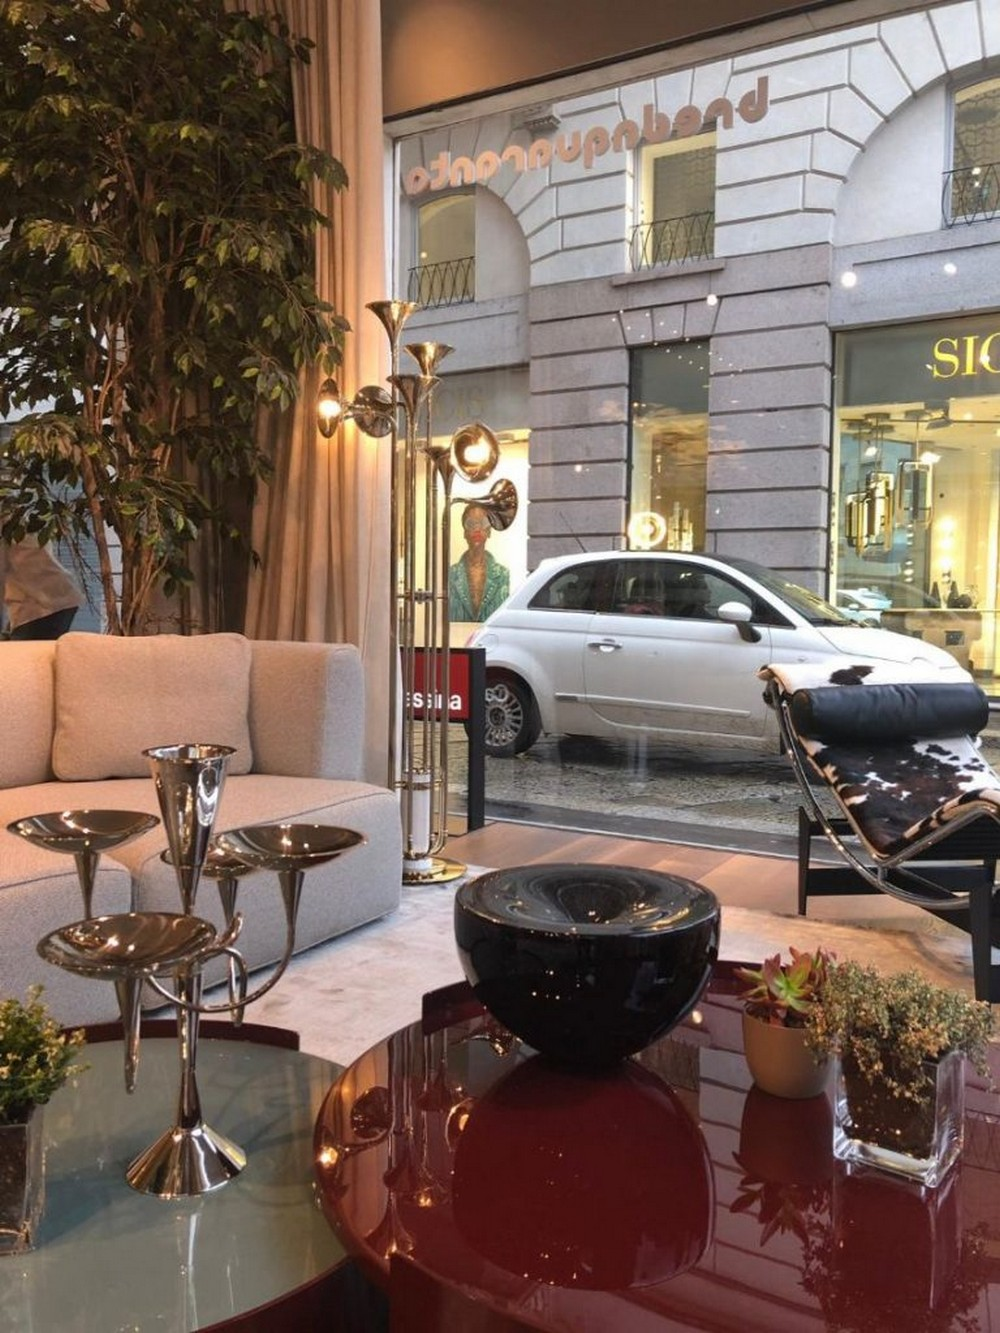 Bredaquaranta Showroom Sets The 2019 Design Trends In Milan bredaquaranta showroom Bredaquaranta Showroom Sets The 2019 Design Trends In Milan Bredaquaranta Showroom Sets The 2019 Design Trends In Milan